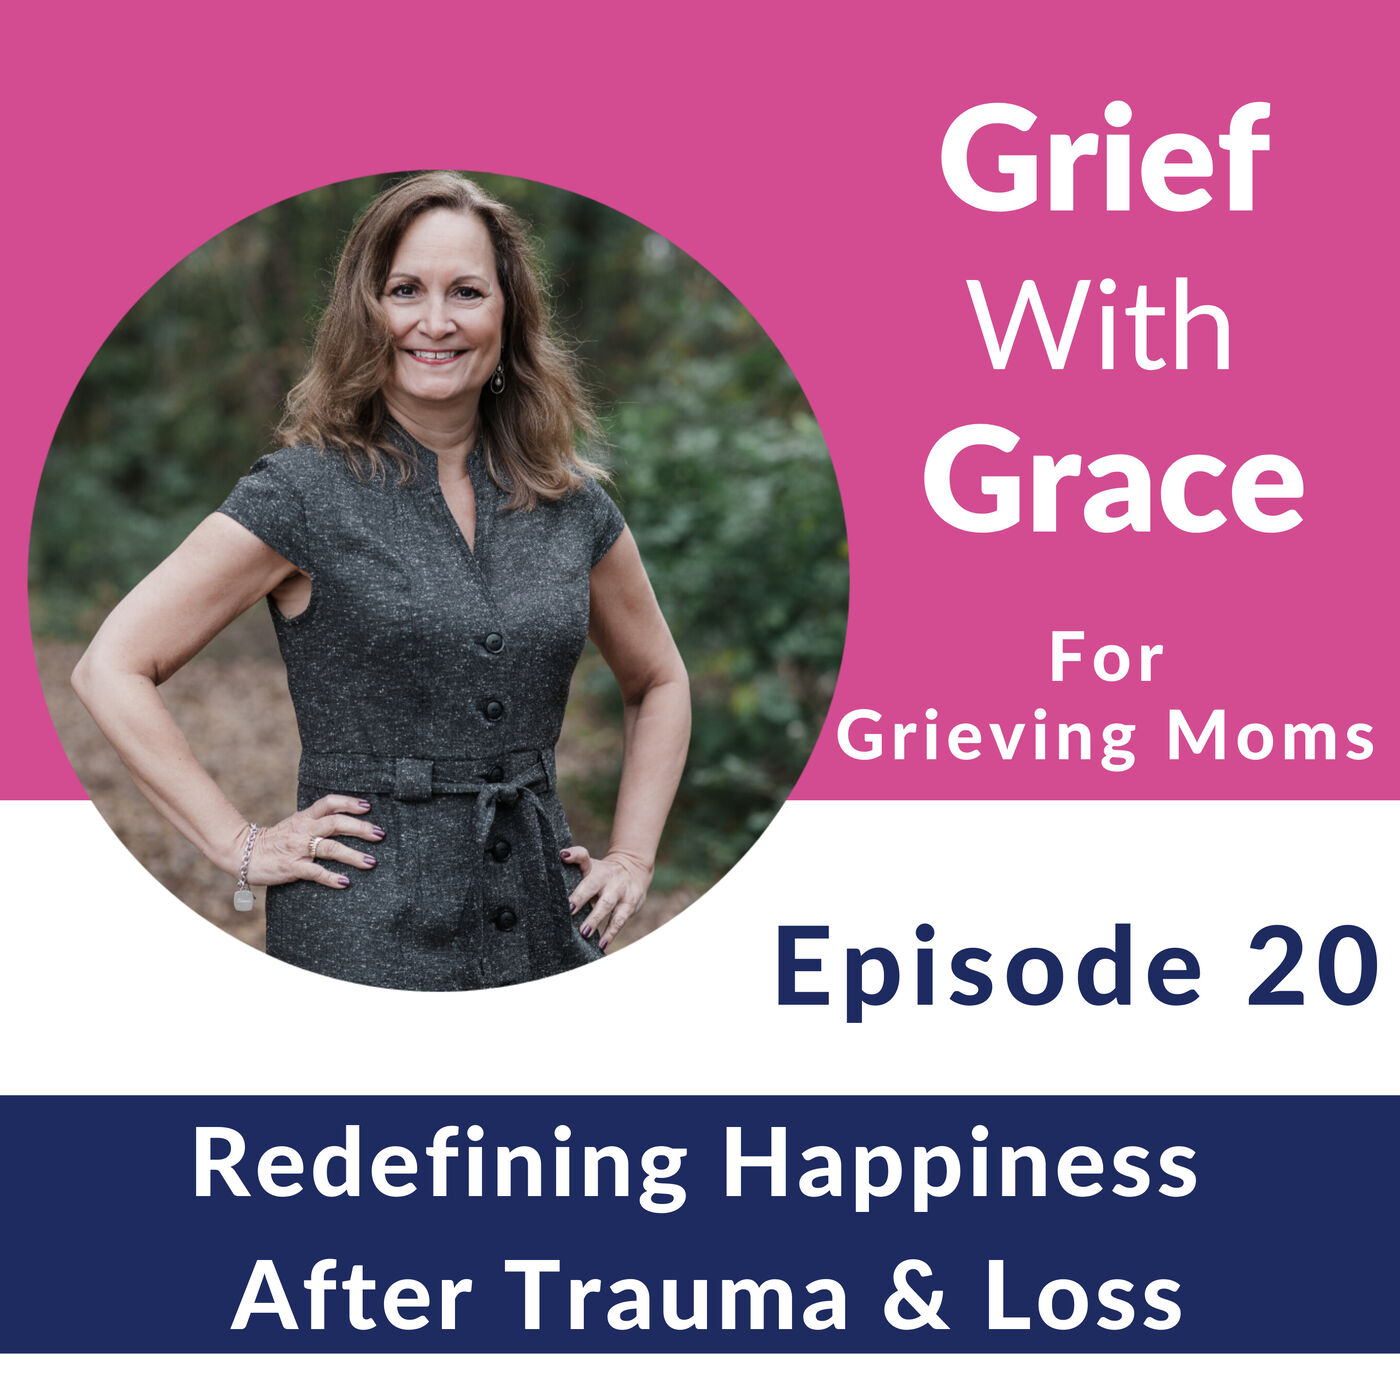 20. Redefining Happiness After Trauma & Loss